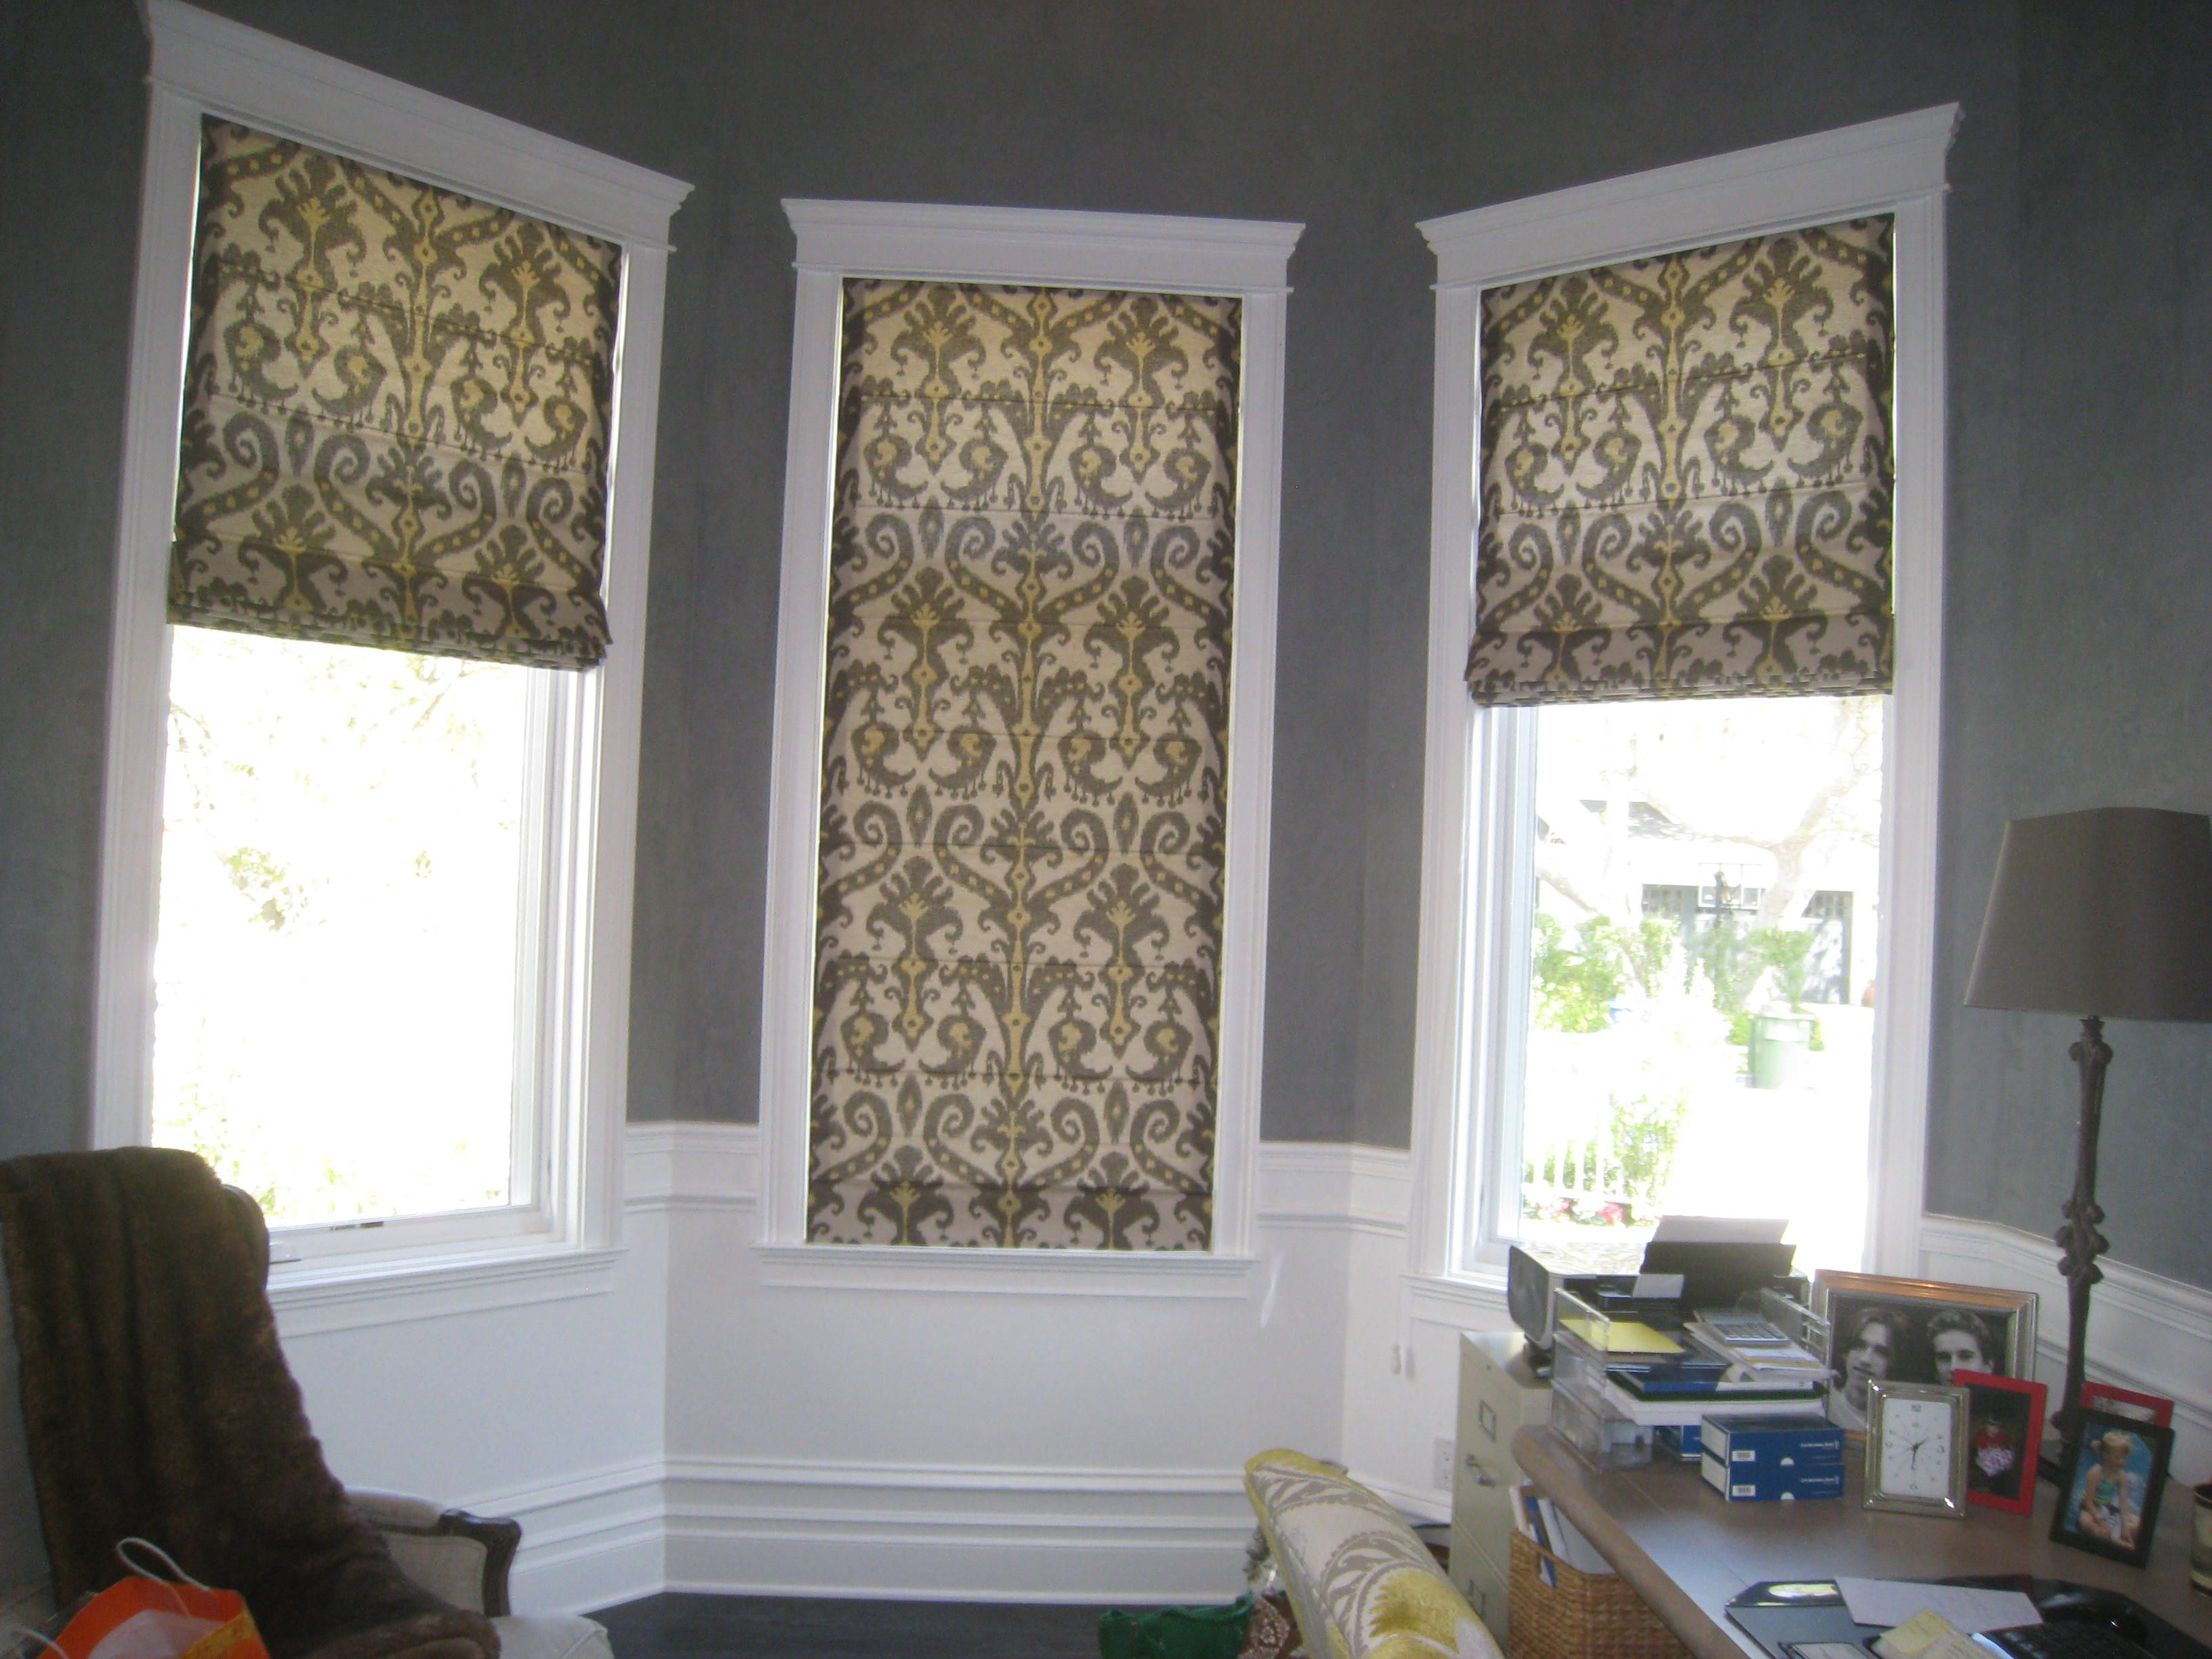 Country Curtains Westport Ct Flat Roman Shades Inside Mount Window Treatments In 2019 Roman